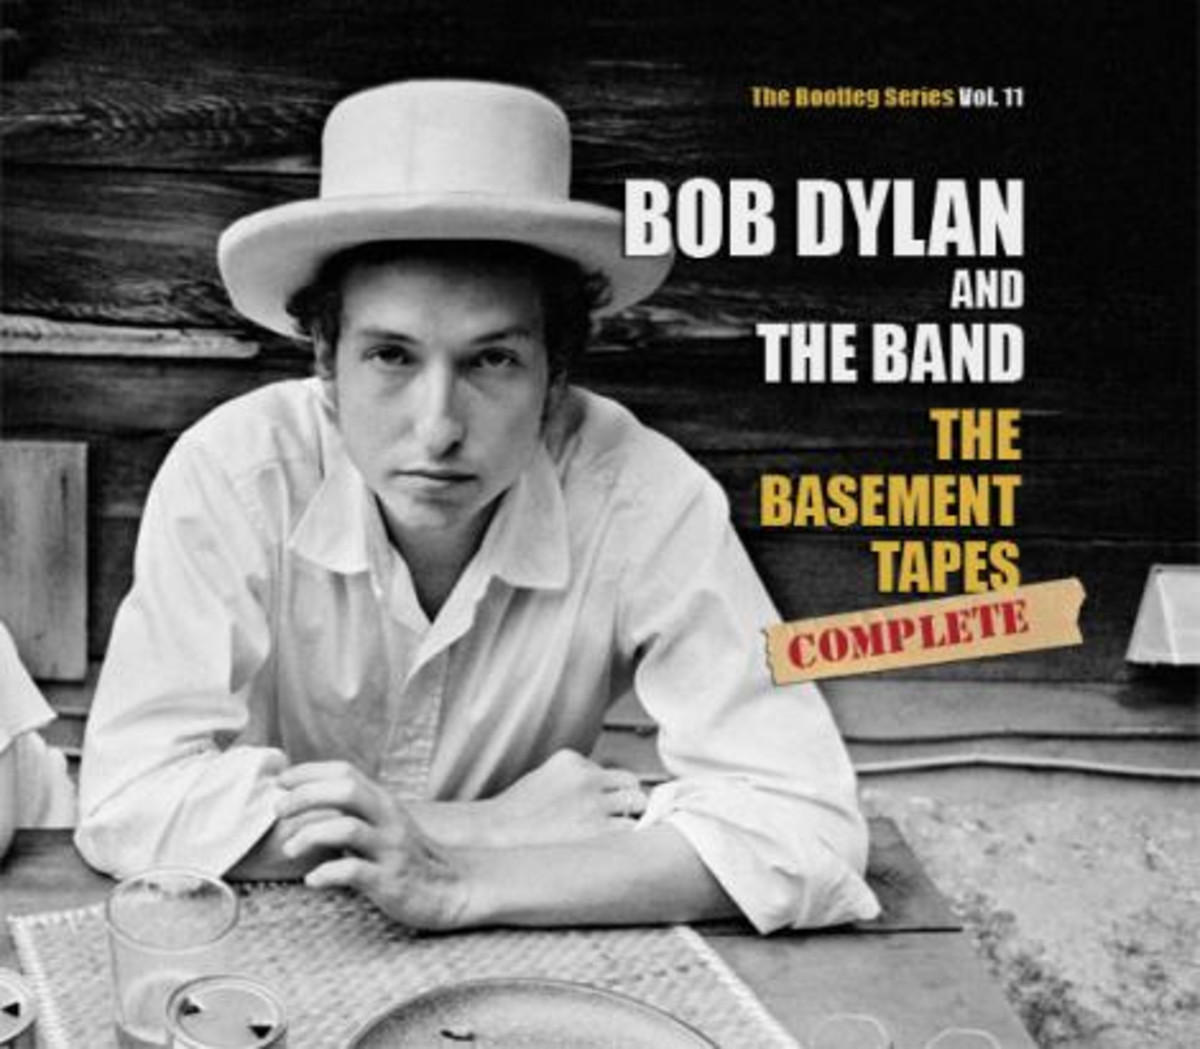 Bob Dylan Basement Tapes Cover Art